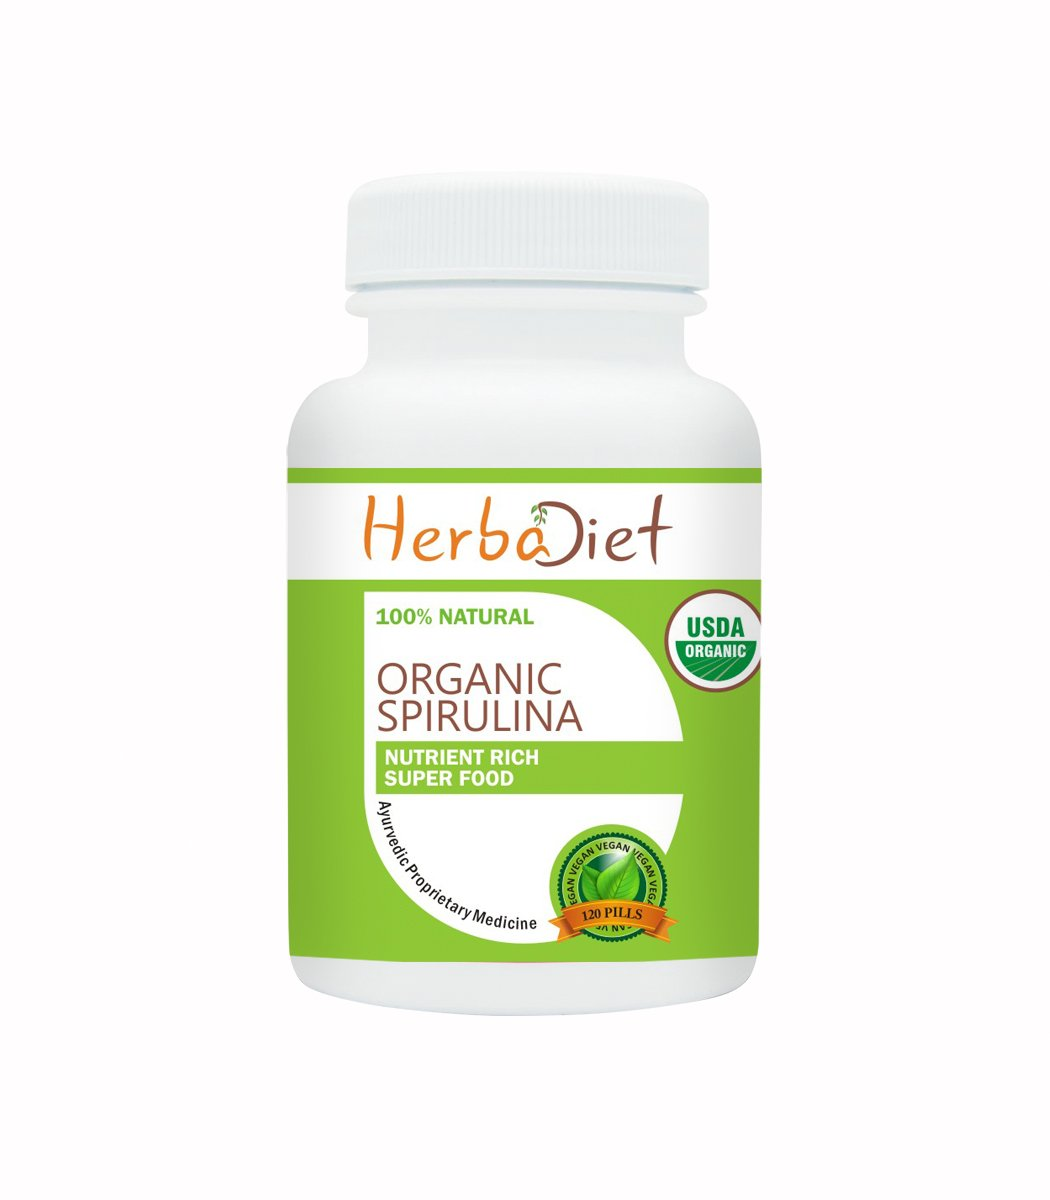 Herbadiet 100% PURE Organic Spirulina 500mg Maximum Strength Daily Dosage Tablets Pills Superfood Detox Cold Pressed (8 Tablets/ 1 Day Supply) by Herbadiet (Image #1)